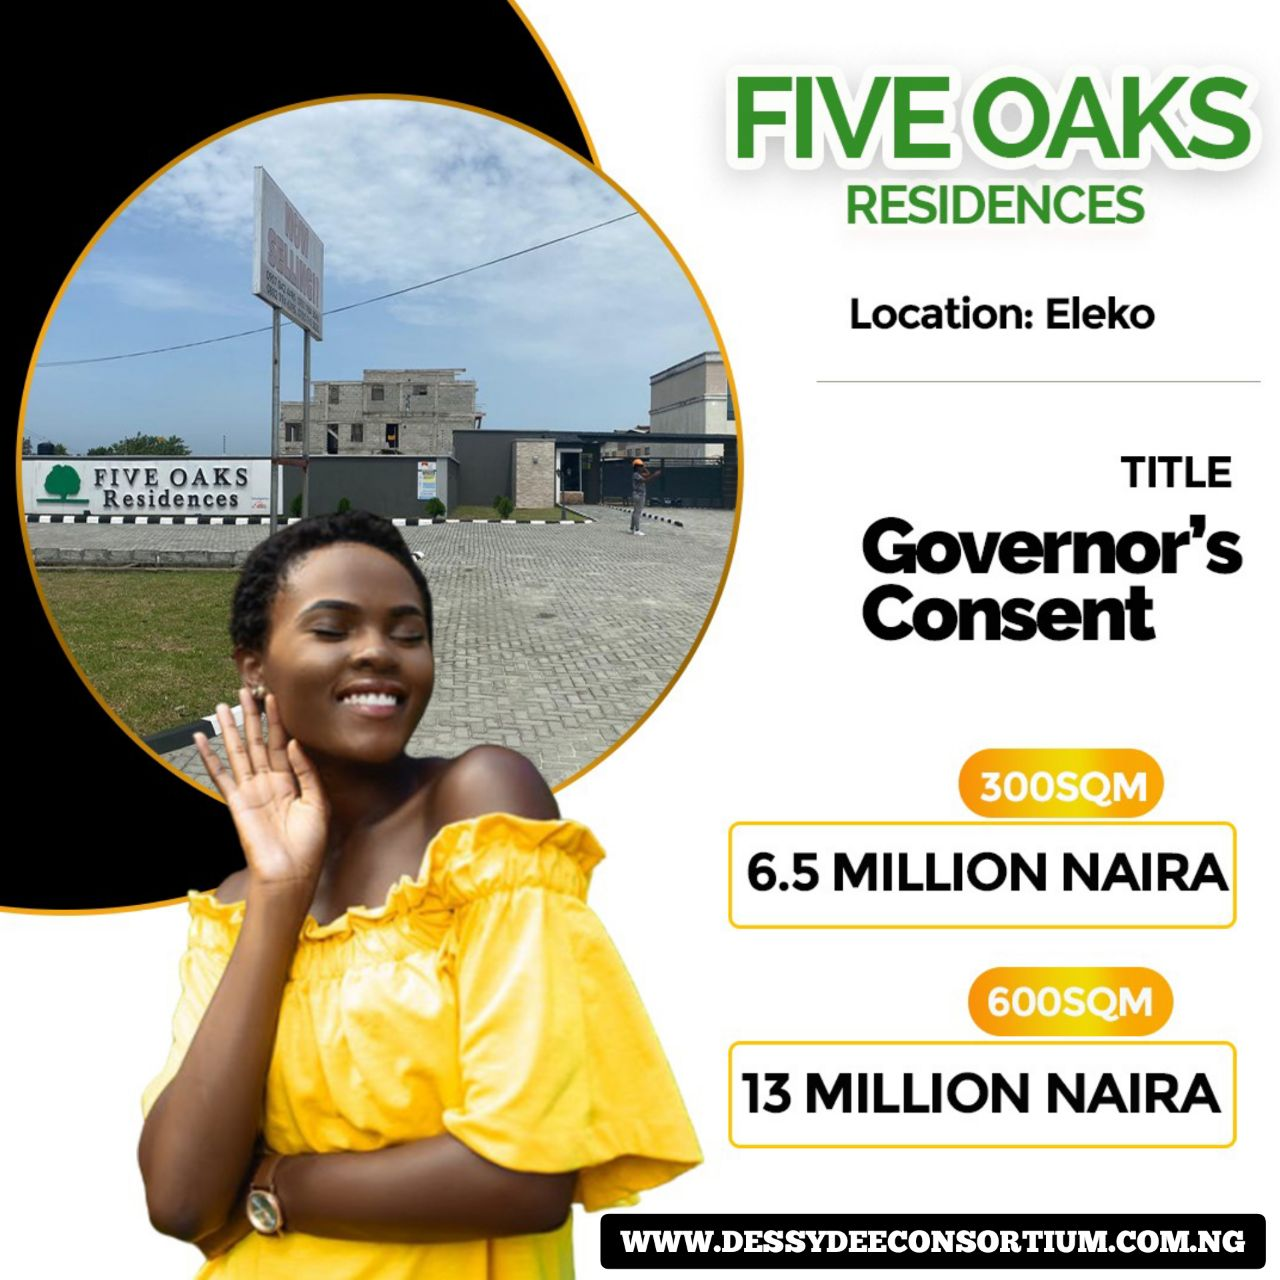 Affordable Land Now Selling in Five Oaks Residences, Eleko